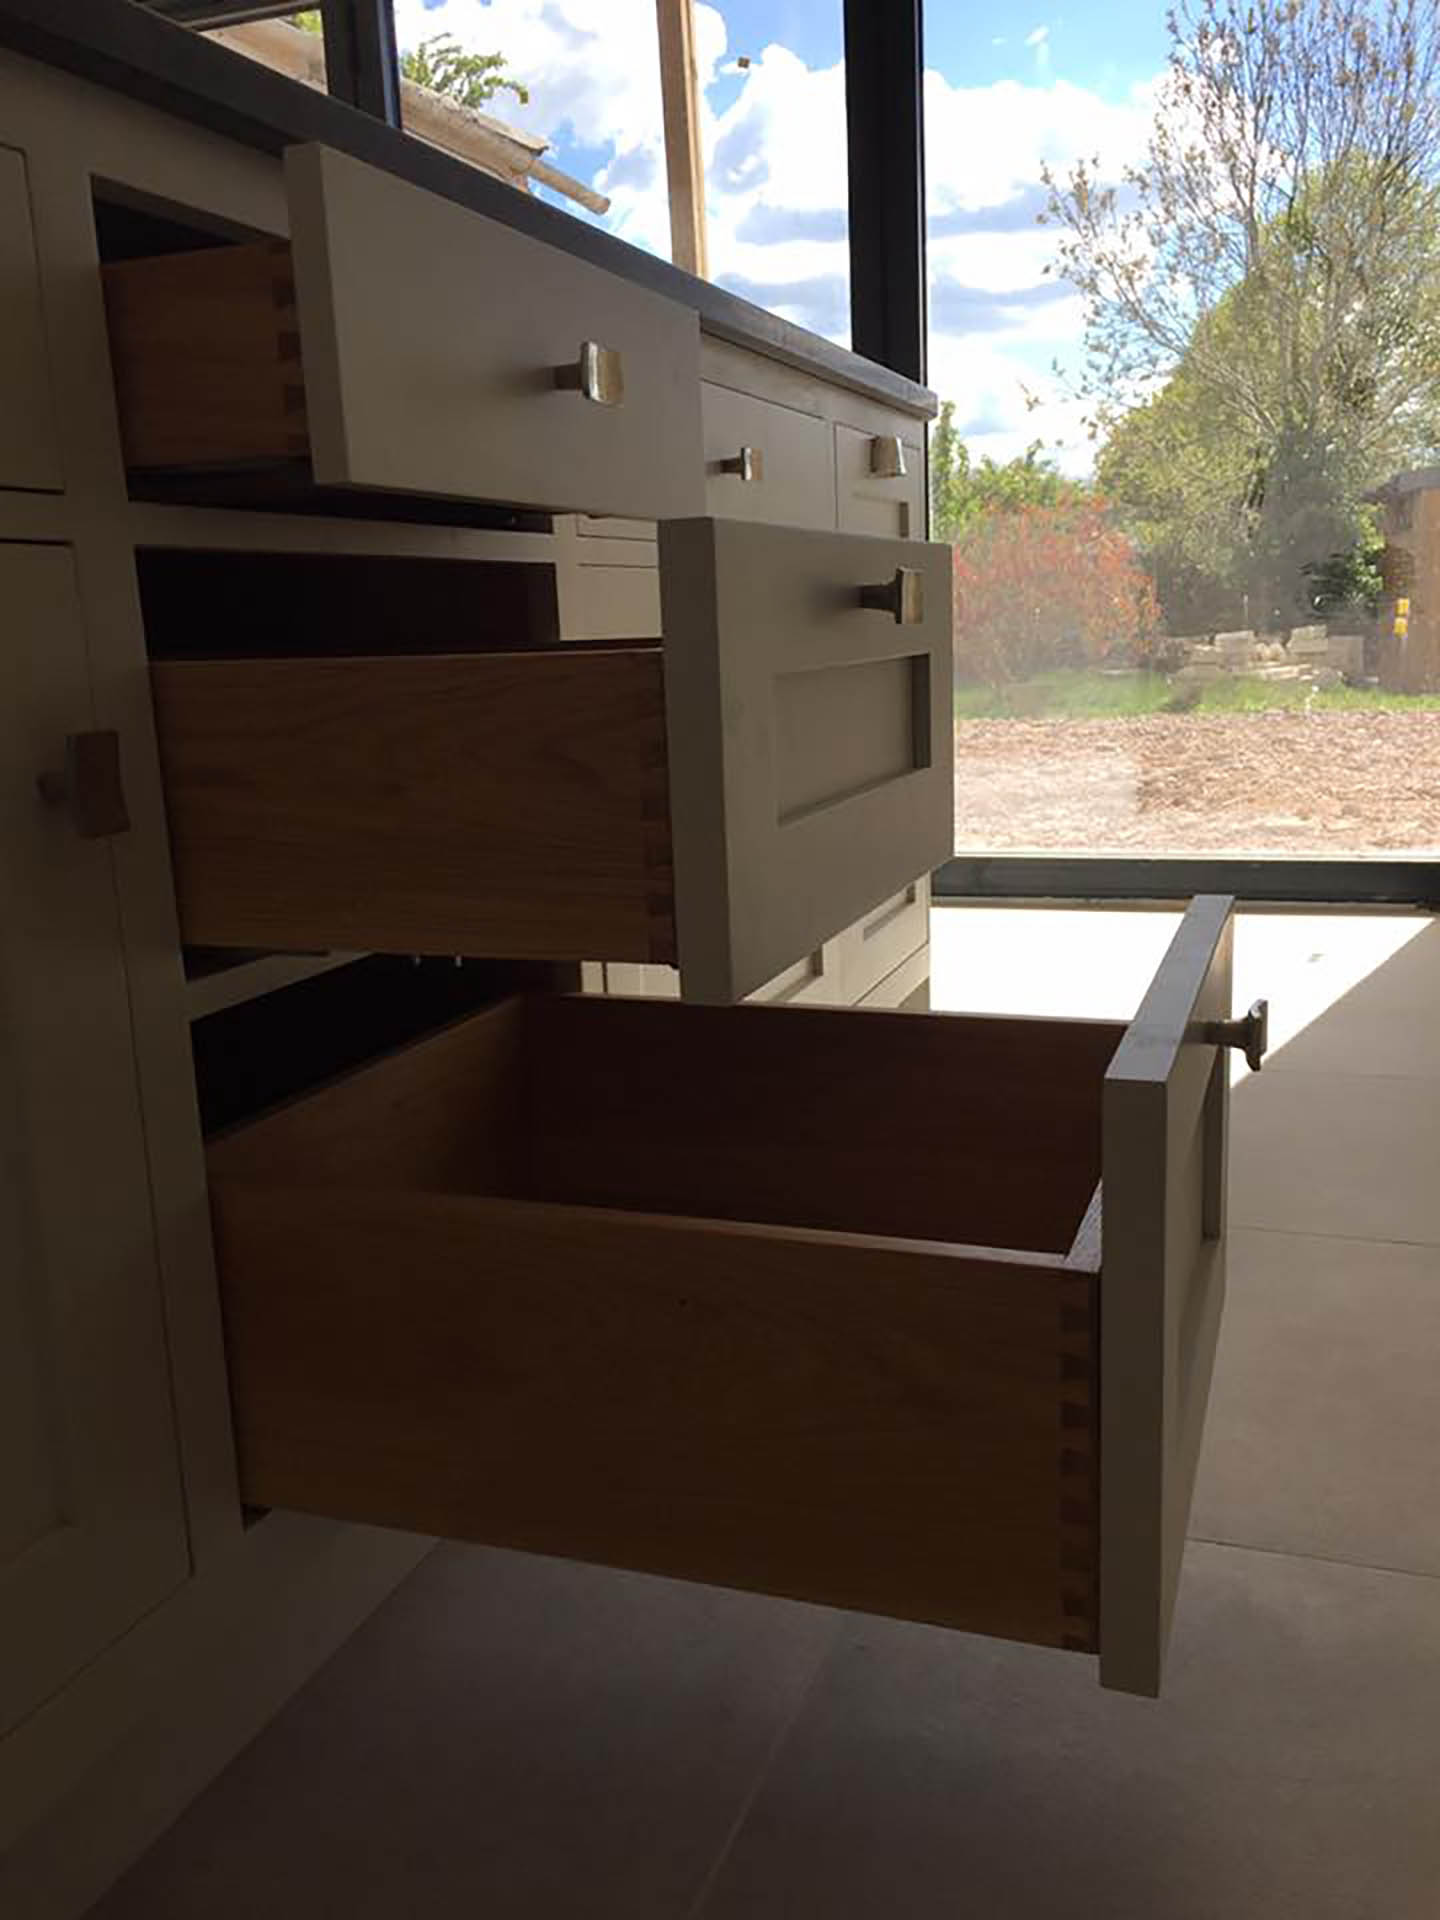 Some open drawers for storing kitchen utensils in